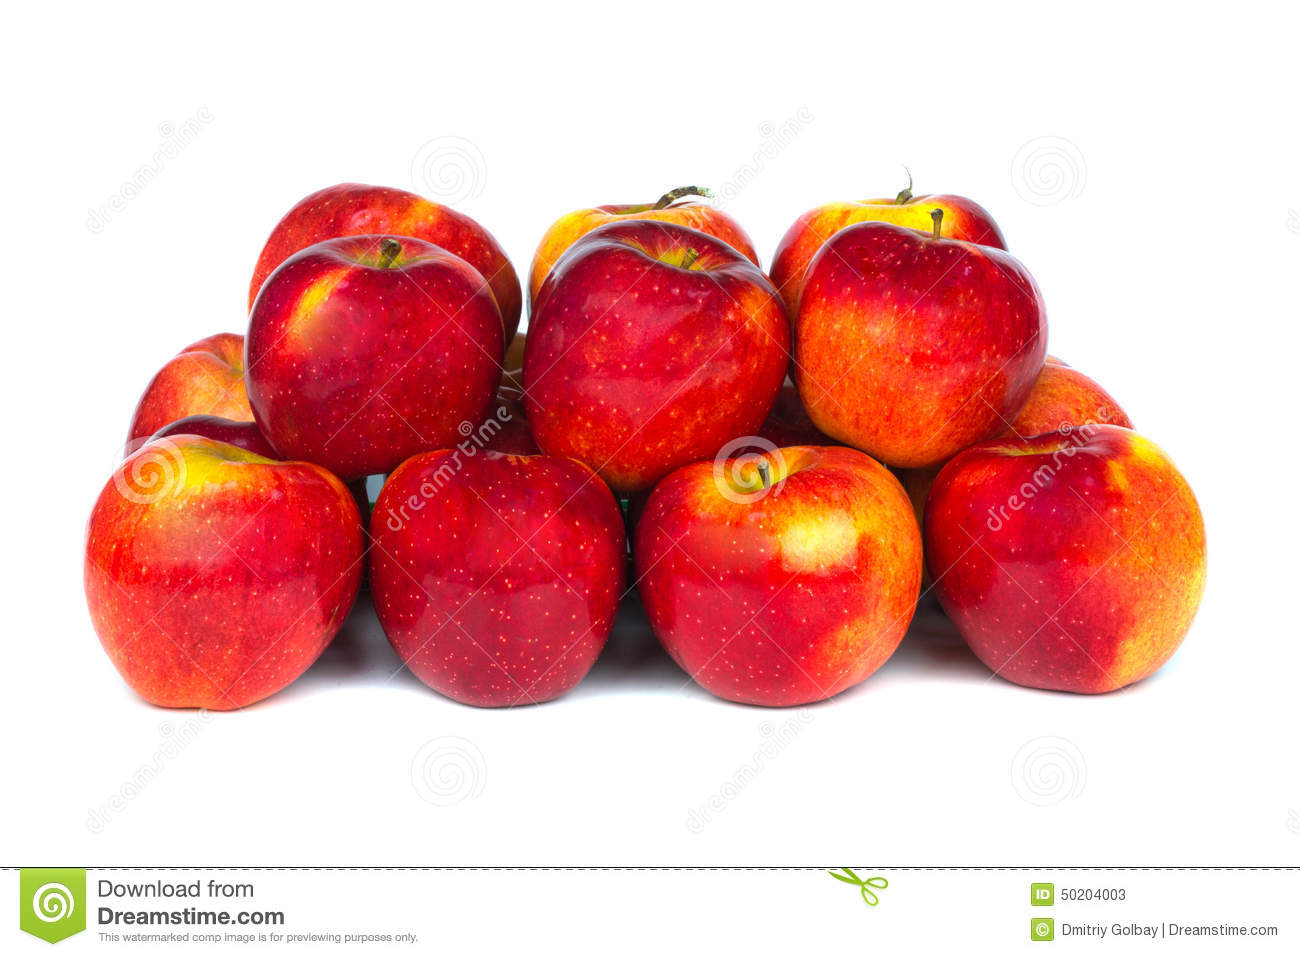 Close up view of some red apples